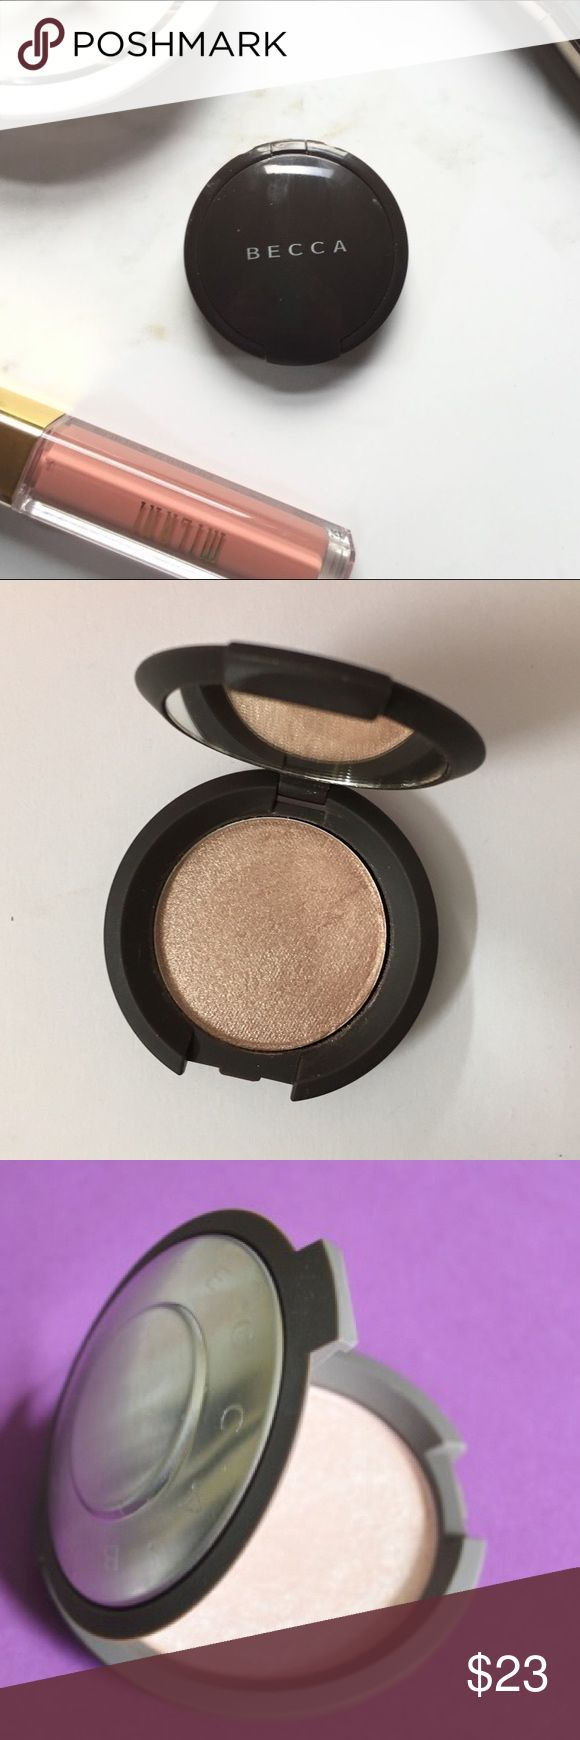 💯✨Becca Opal highlighter brand new ! W/ gift ✨ Becca cosmetics opal highlighter ! I love becca highlights it's my go to I use her liquid opal ! This is for the pressed powder .Get this new purse size highlighter for in the go women ! BECCA Makeup Luminizer